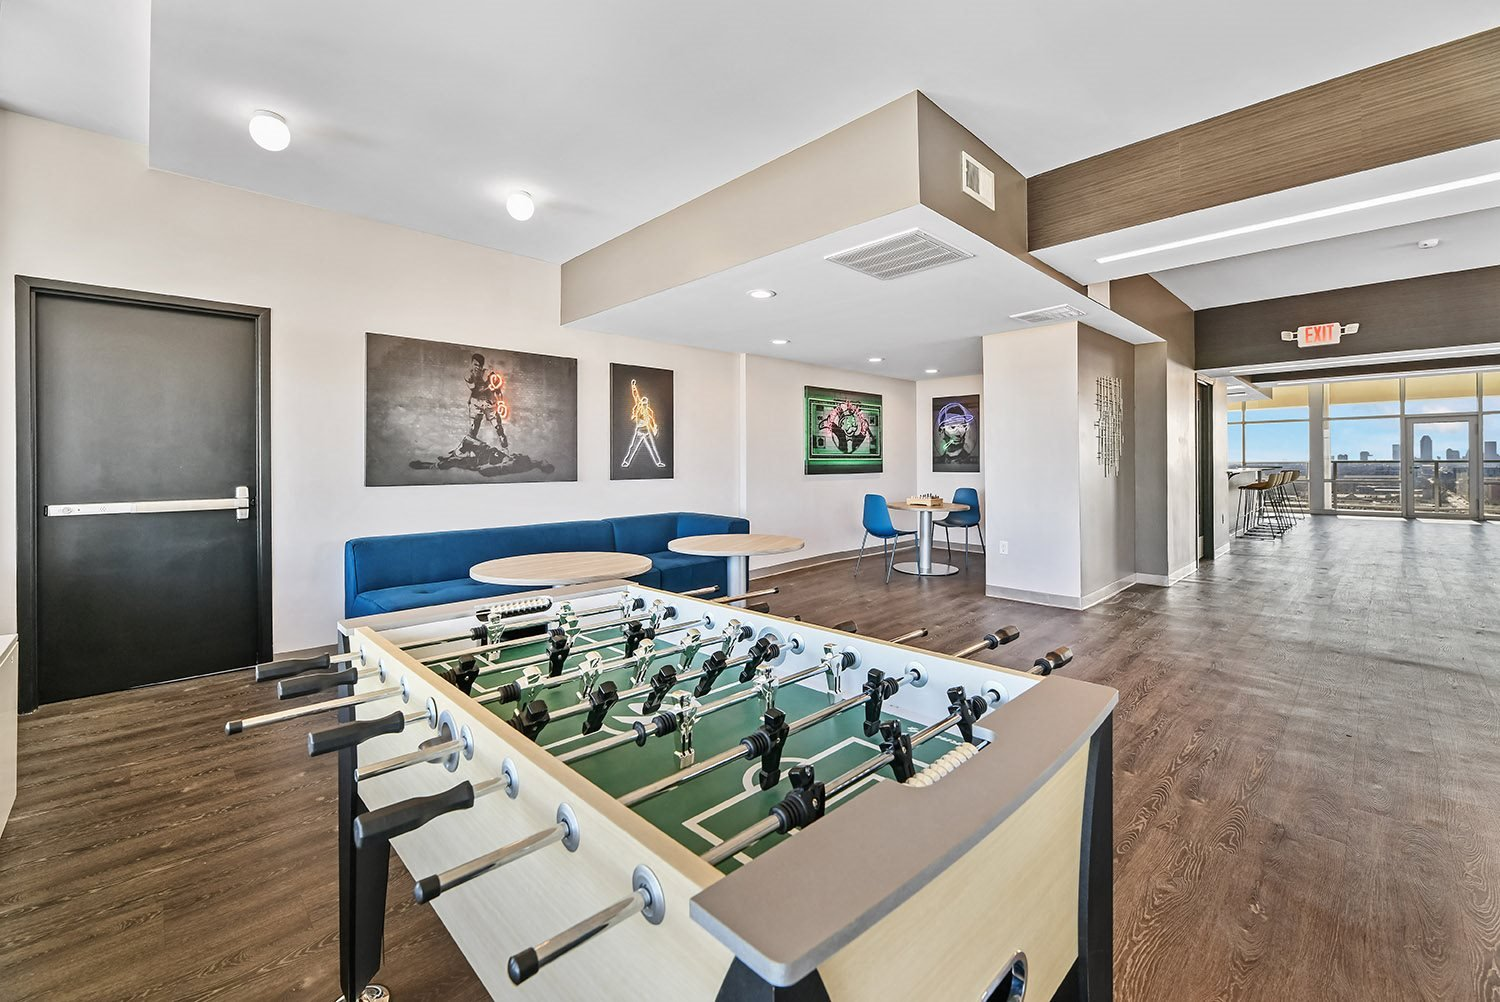 Foossball Table in Game Room at CityView on Meridian, Indiana, 46208